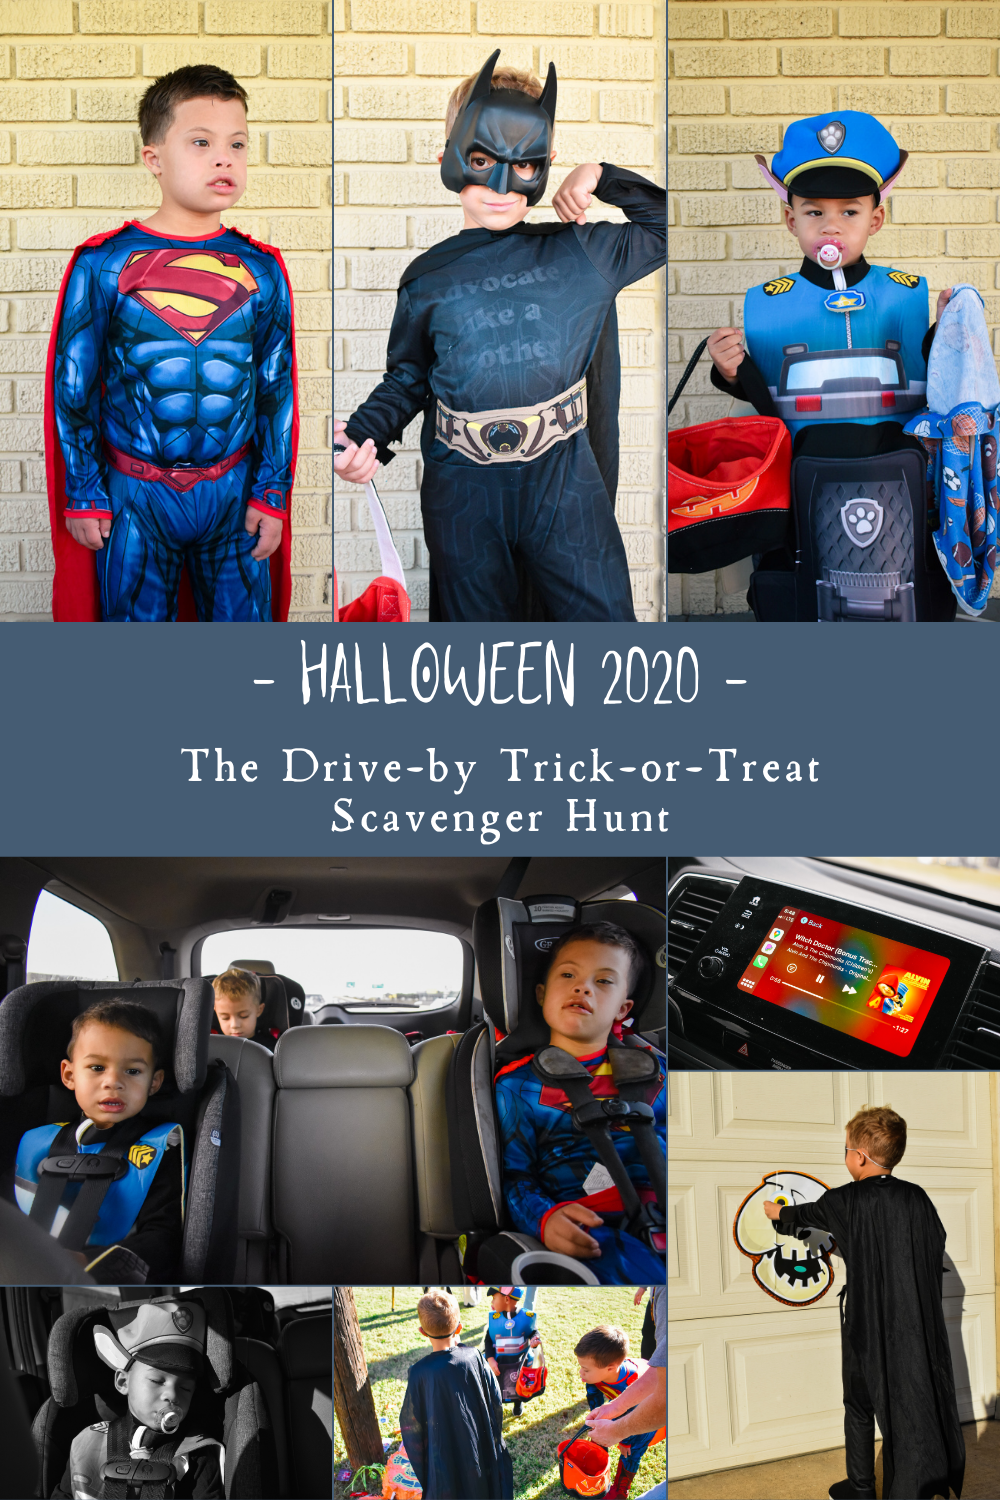 Graphic of three little boys in Chase costume, batman costume, superman costume, and pics of them riding in car on Halloween scavenger hunt, and of them cracking a pinata and playing games